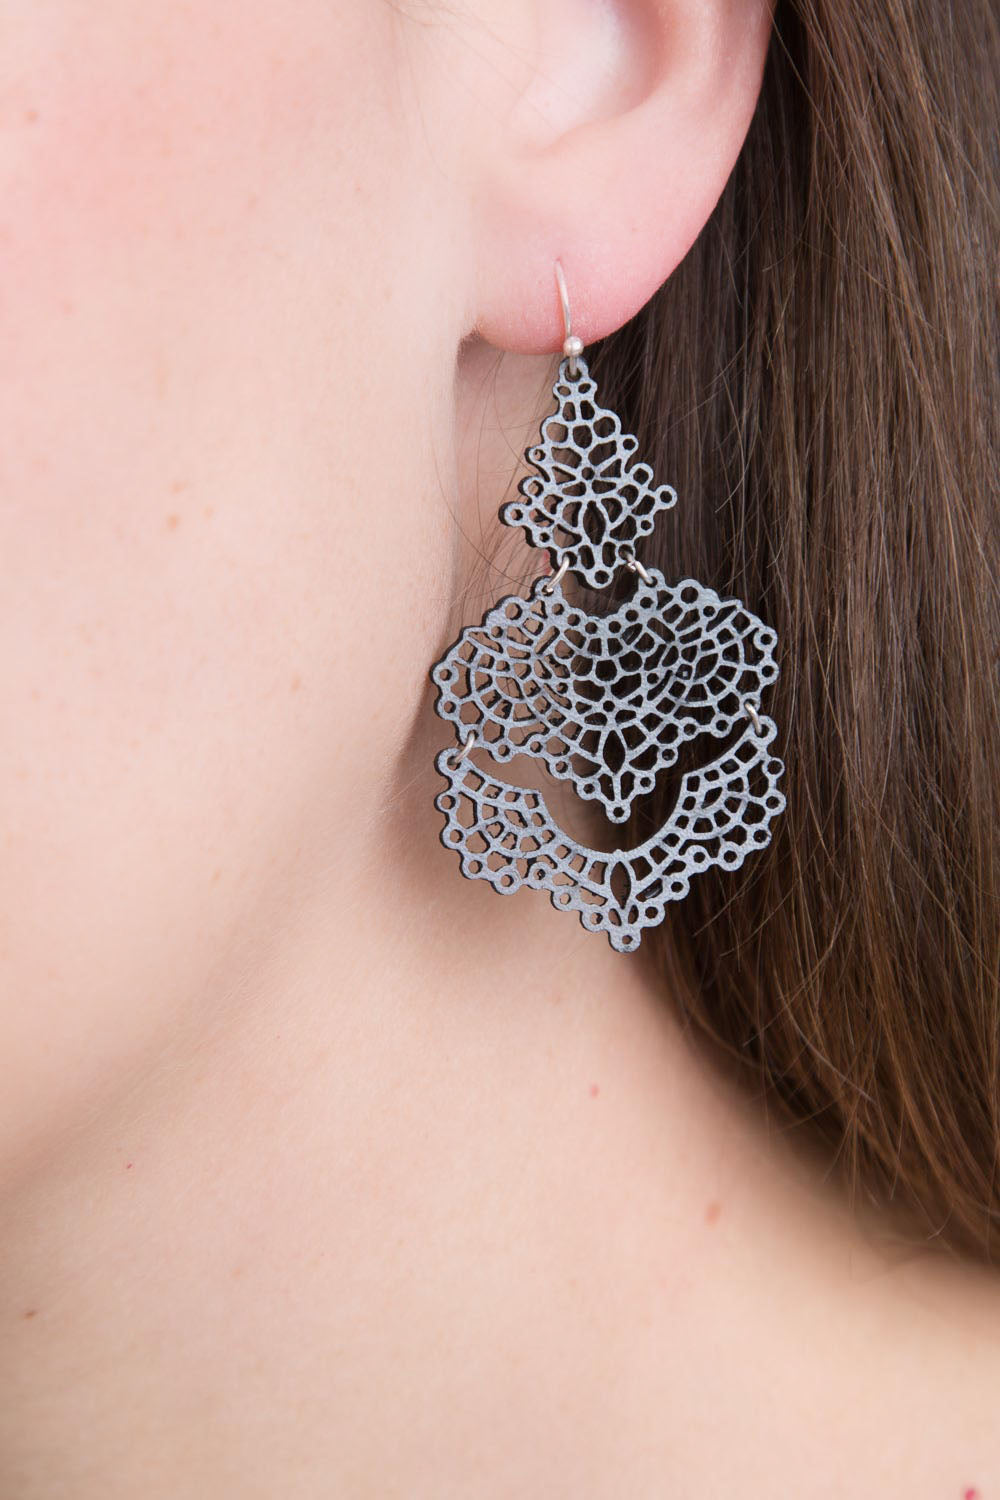 Type 2 Soft Expression Earrings